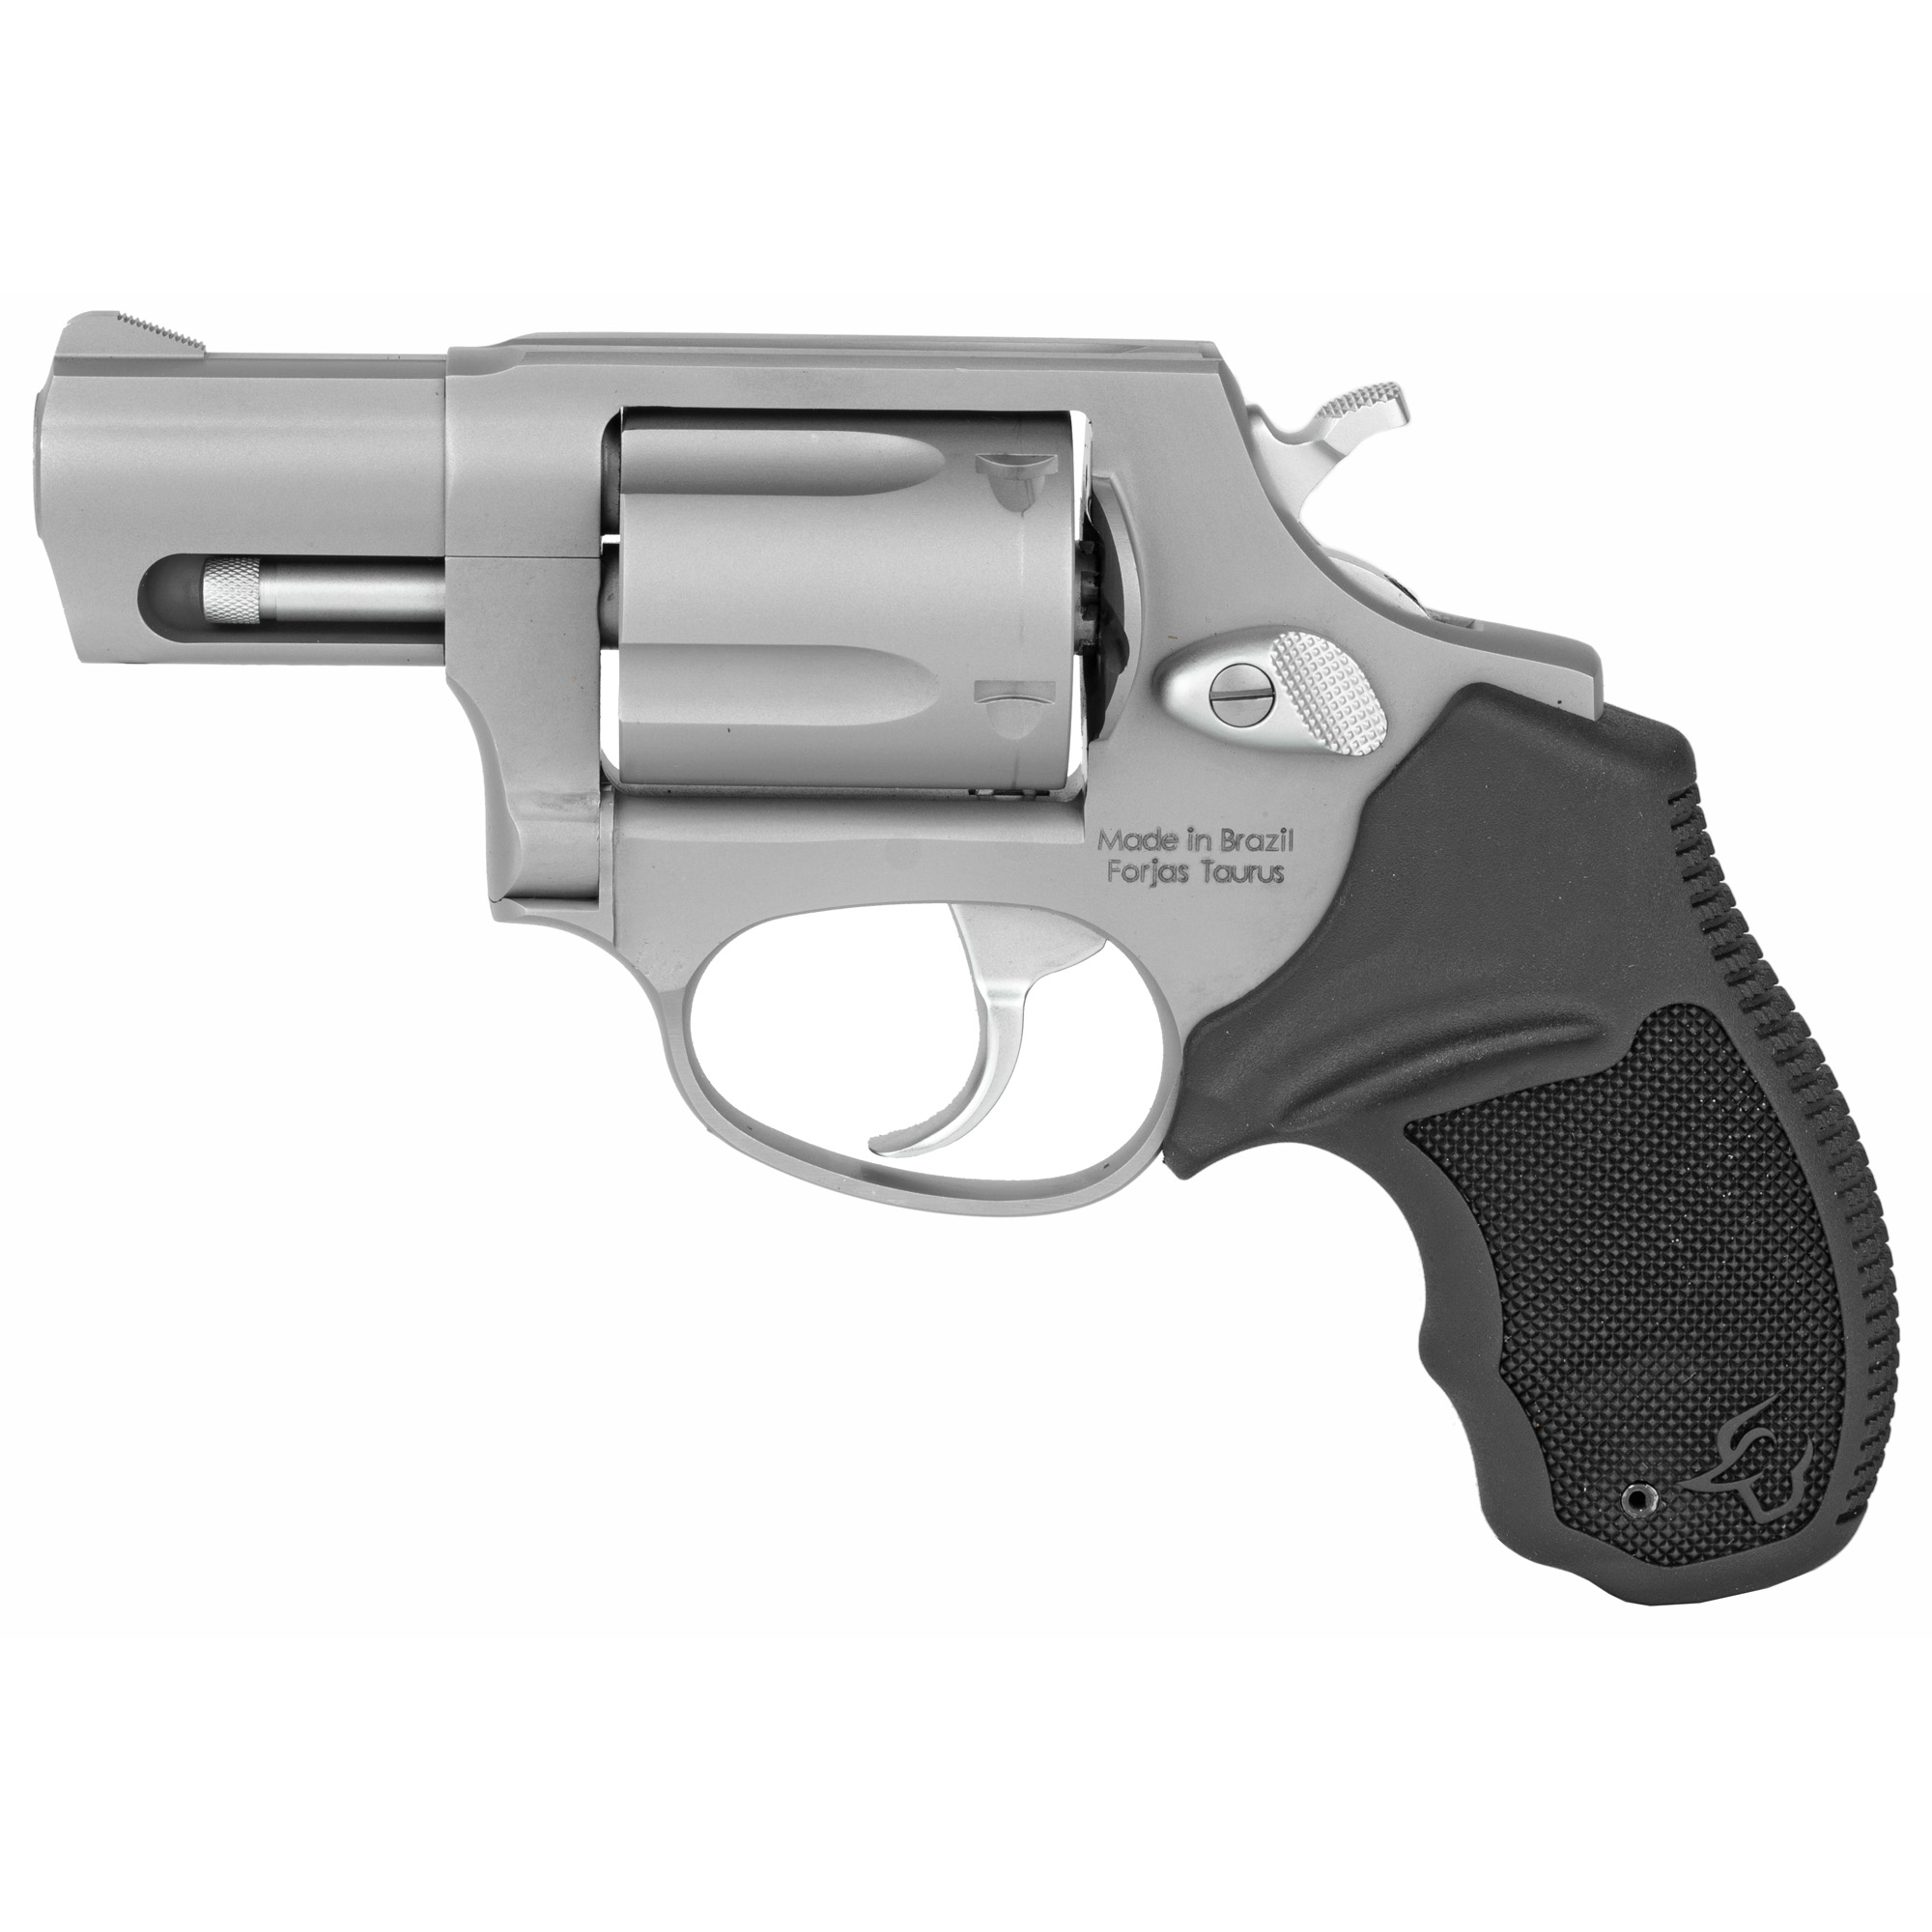 """Using the powerful .357 Magnum round"""" this quick-draw revolver has plenty of muscle to back it up. Features include fixed sights"""" crisp single-double action trigger and a transfer bar for added safety."""